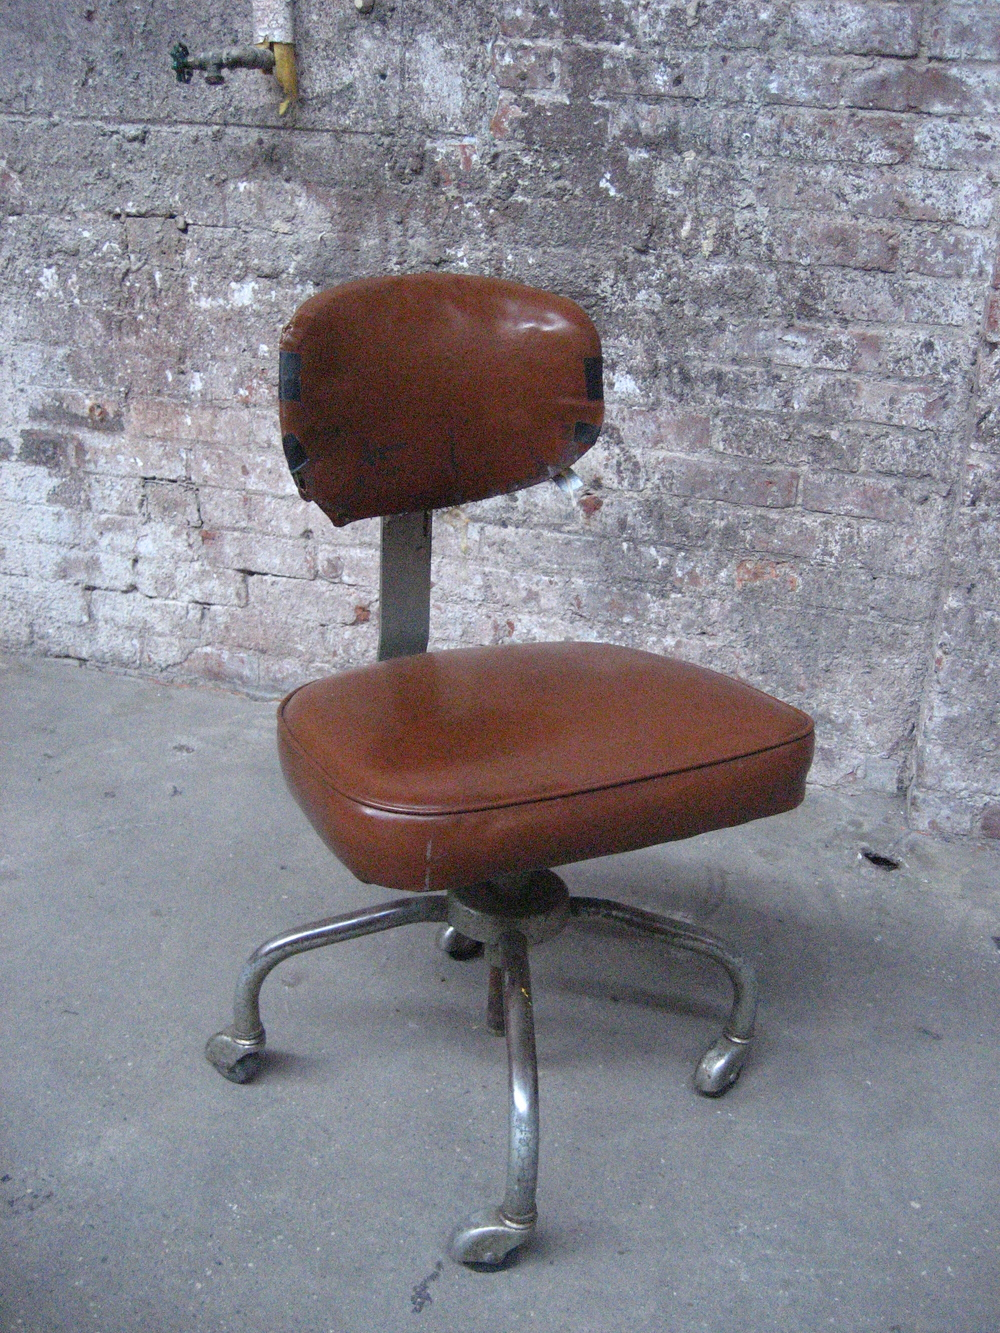 Rolling Brown Leather Accountant's Chair $45